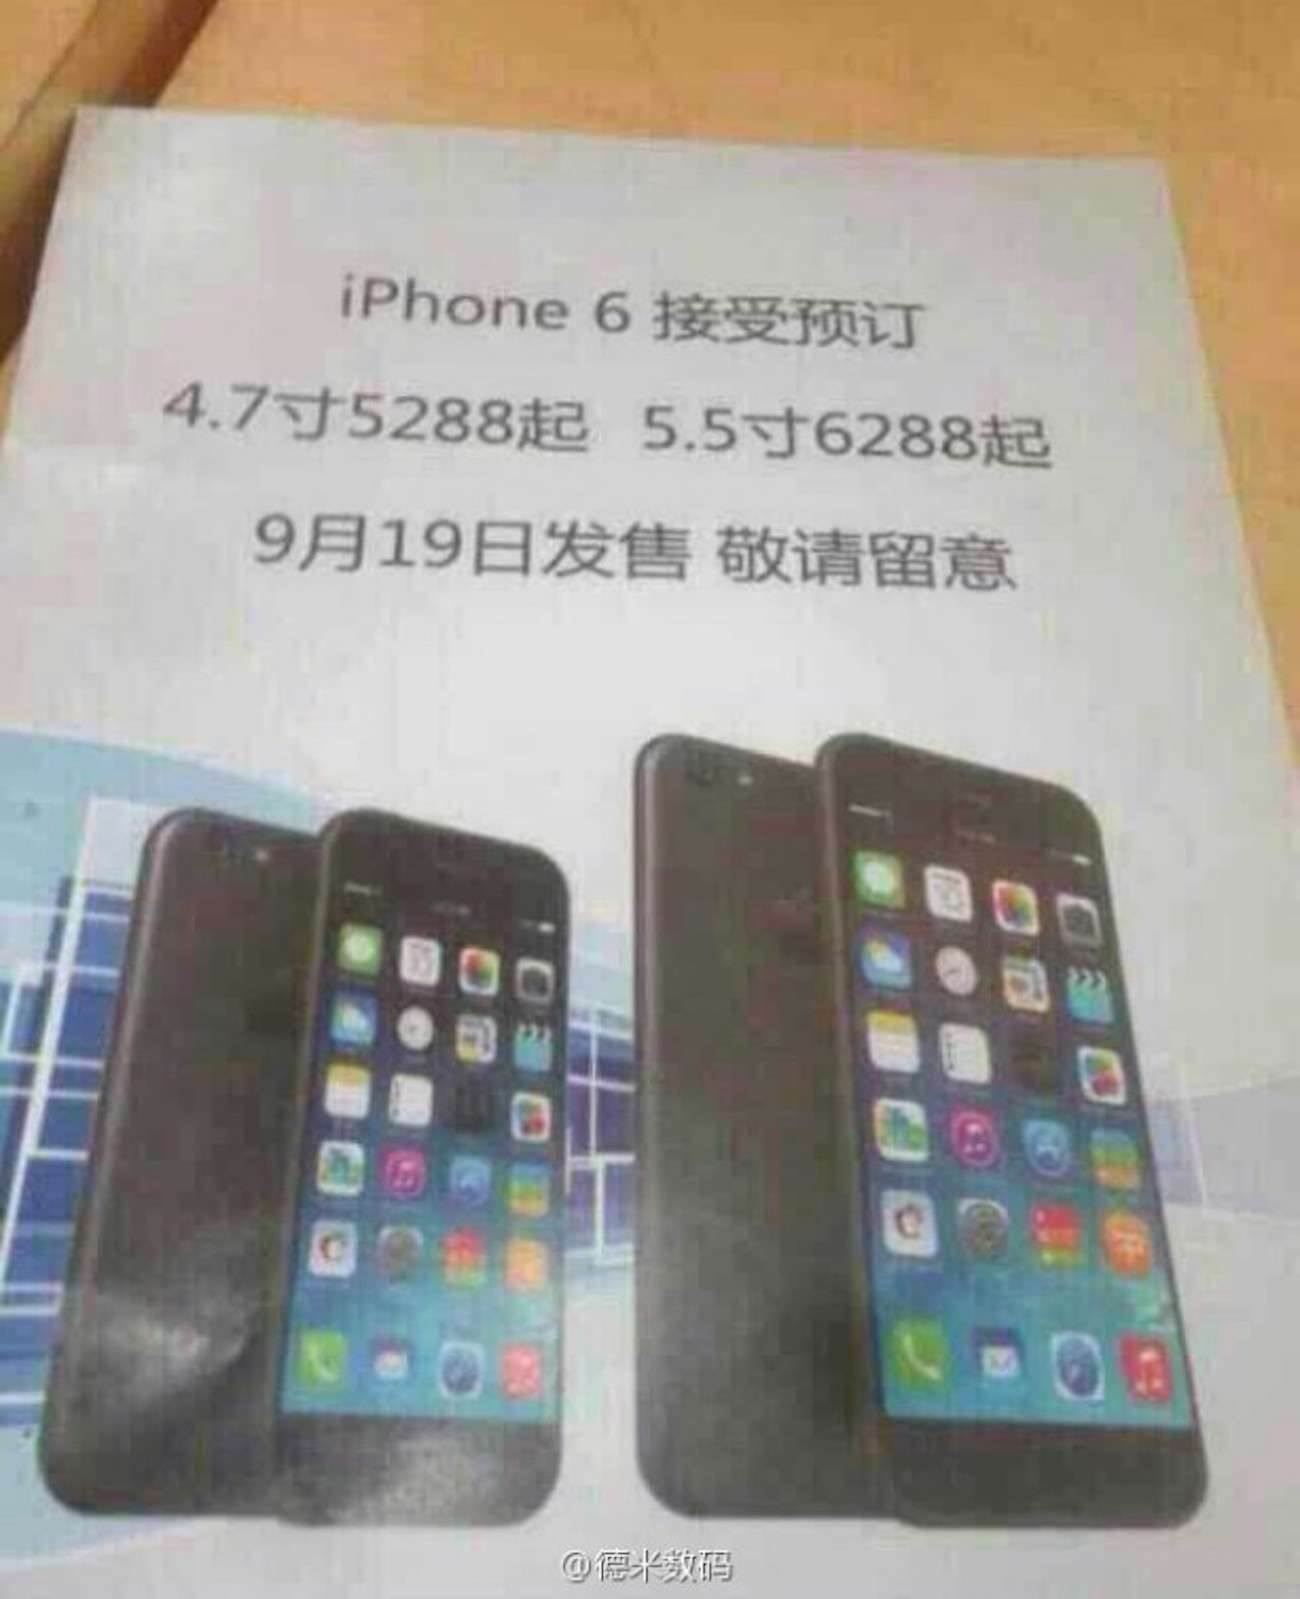 iPhone-6-China-pricing-614x755